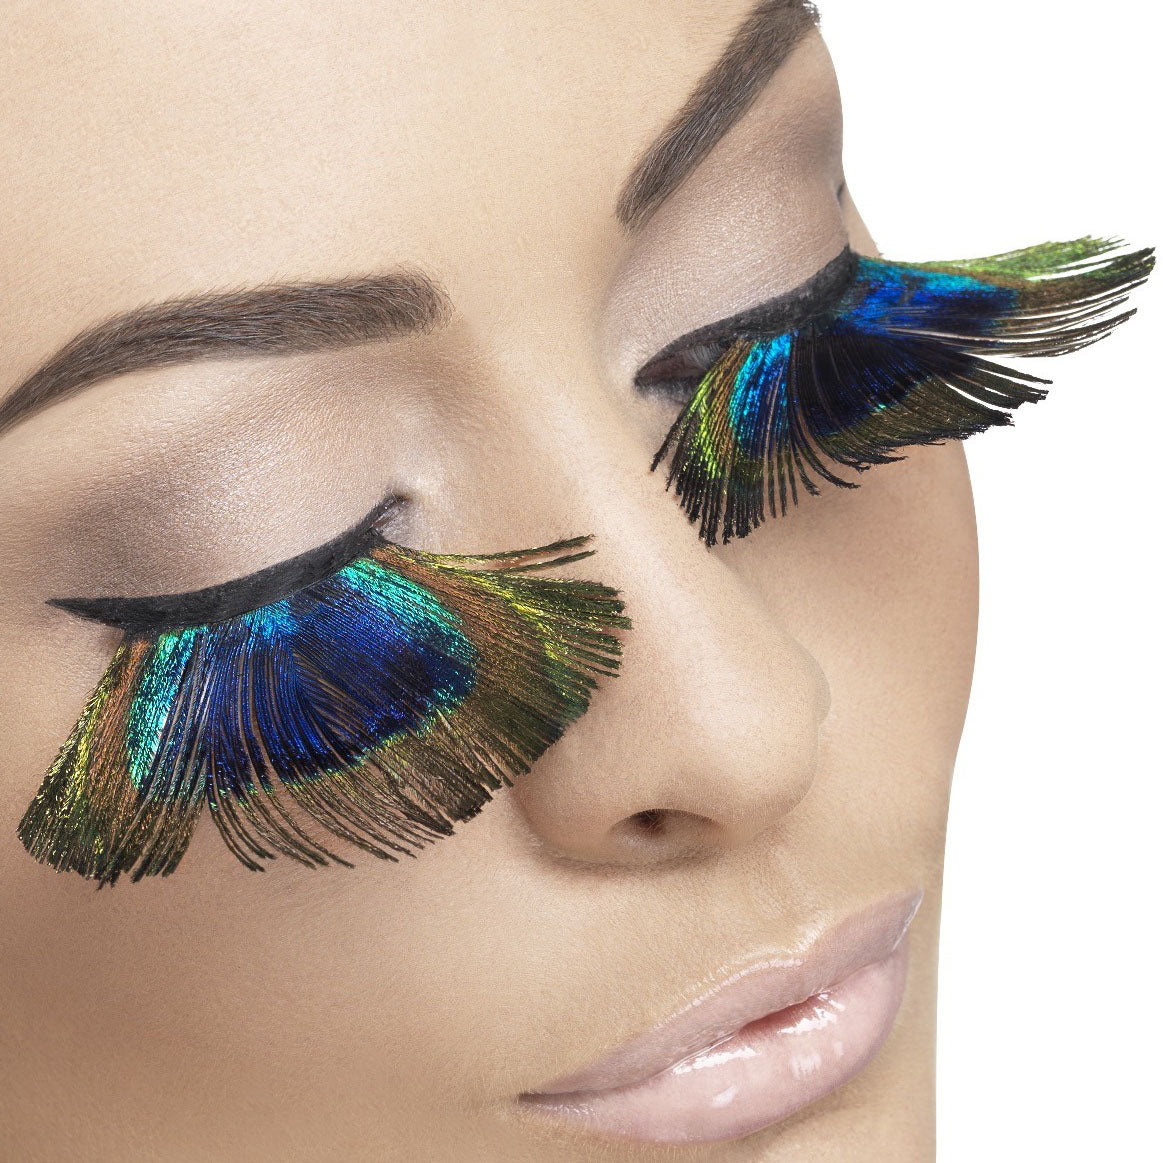 8a58ed309cd Fever False Eyelashes - Blue Peacock Feathers - Red Carpet FX -  Professional Makeup